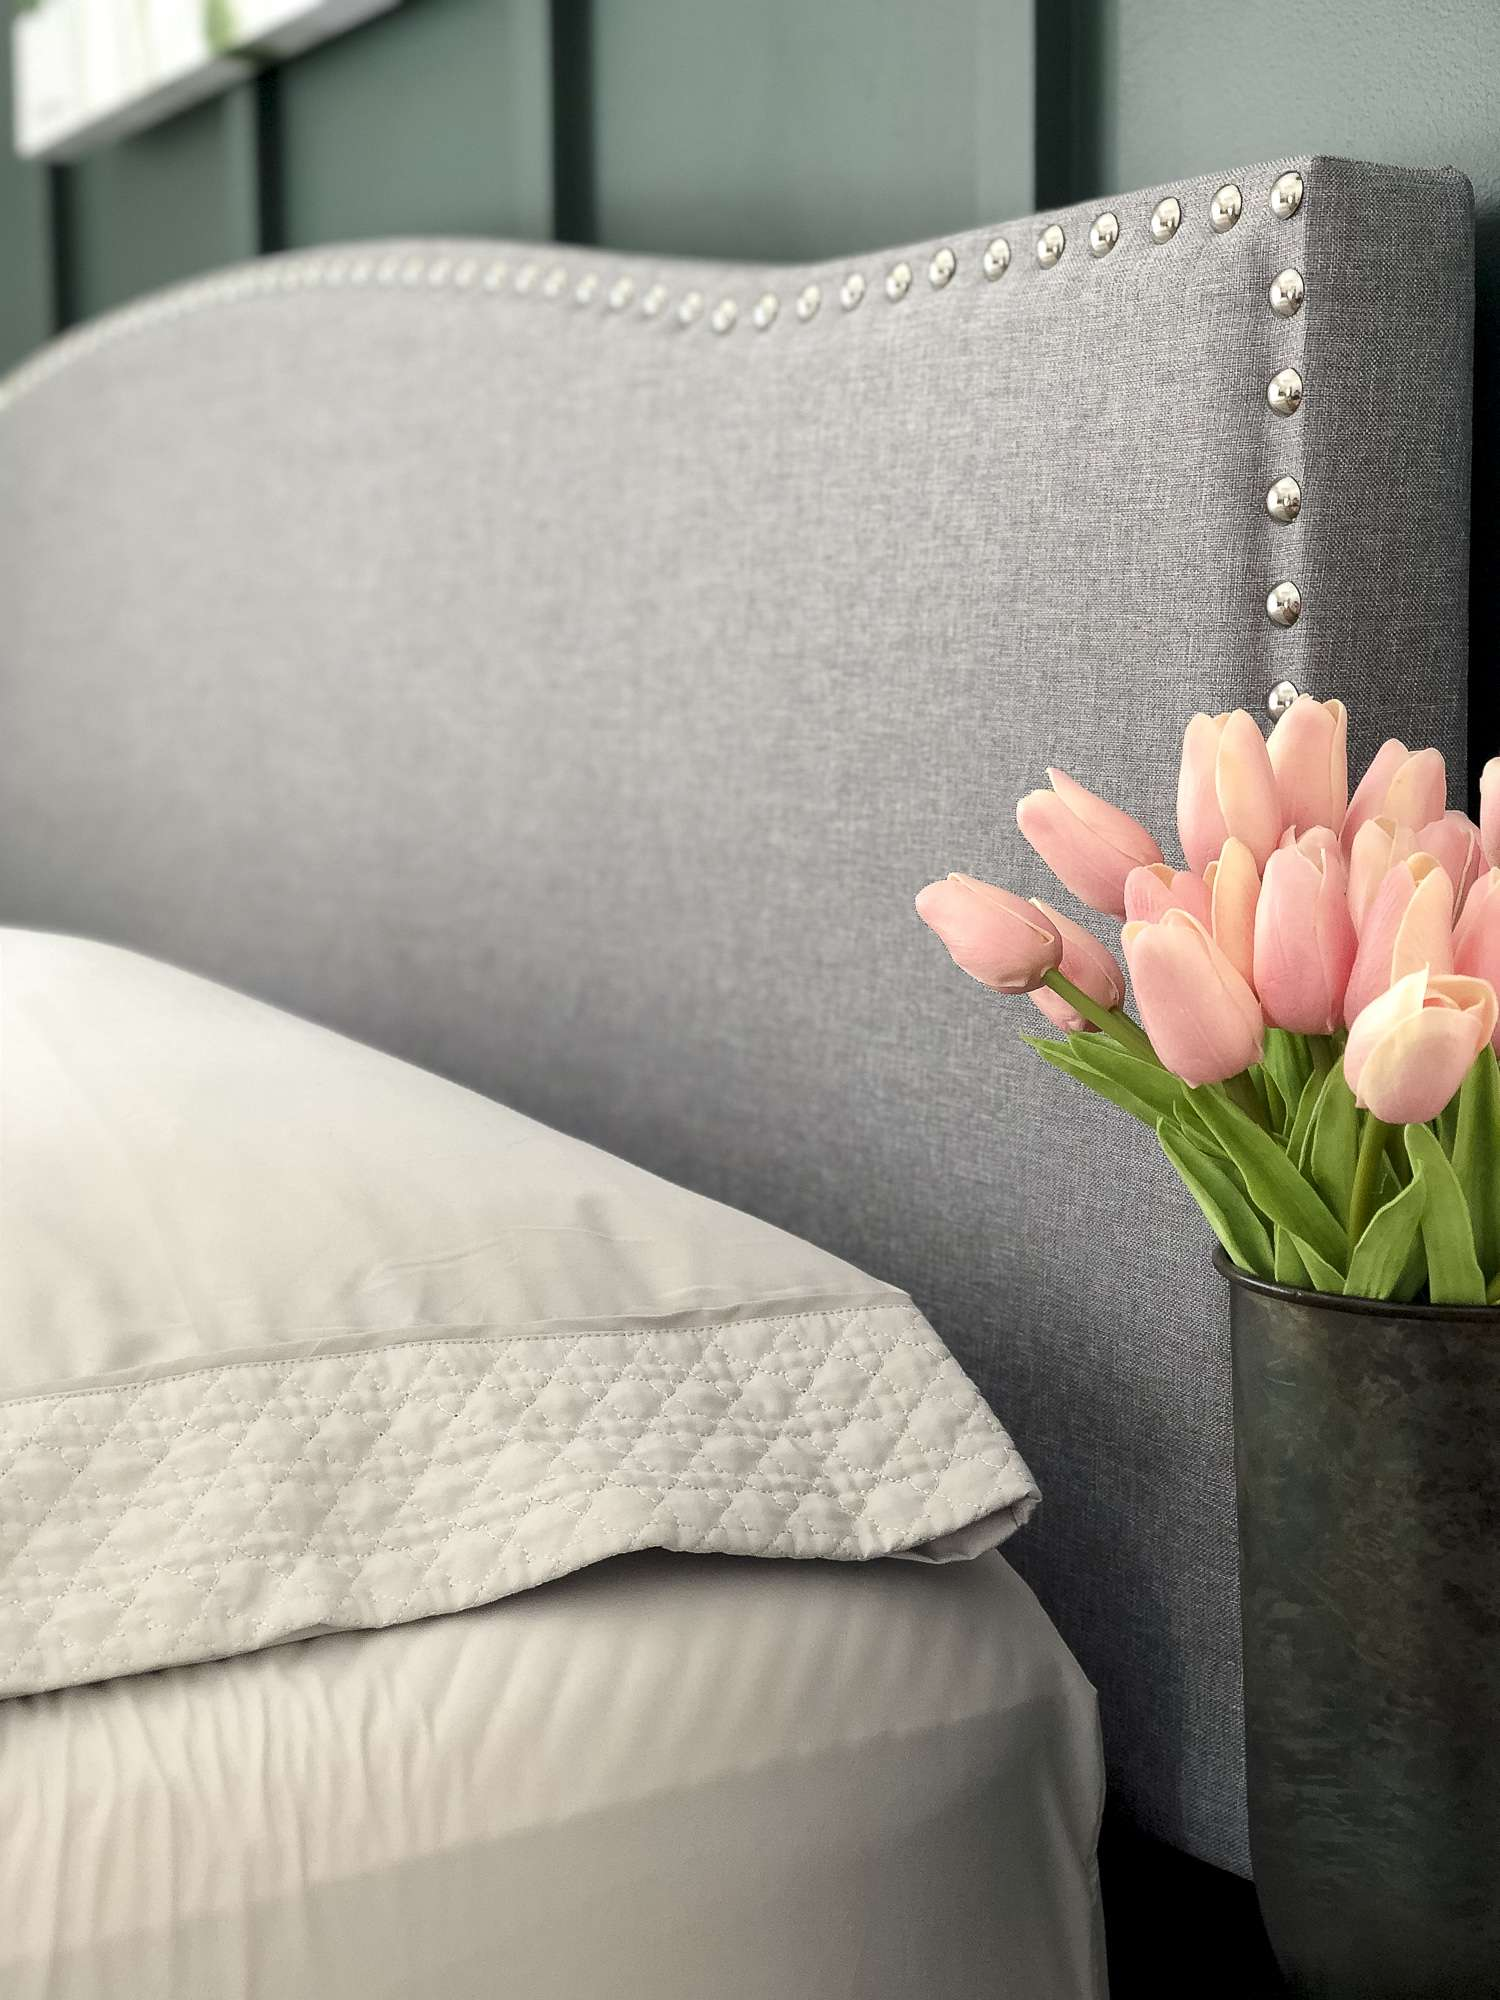 Are you looking for cozy bedroom ideas for spring? Today I'm sharing how to make your bedroom cozy with textures even as we head into the spring season. #fromhousetohaven #springbedroomideas #cozybedroomideas